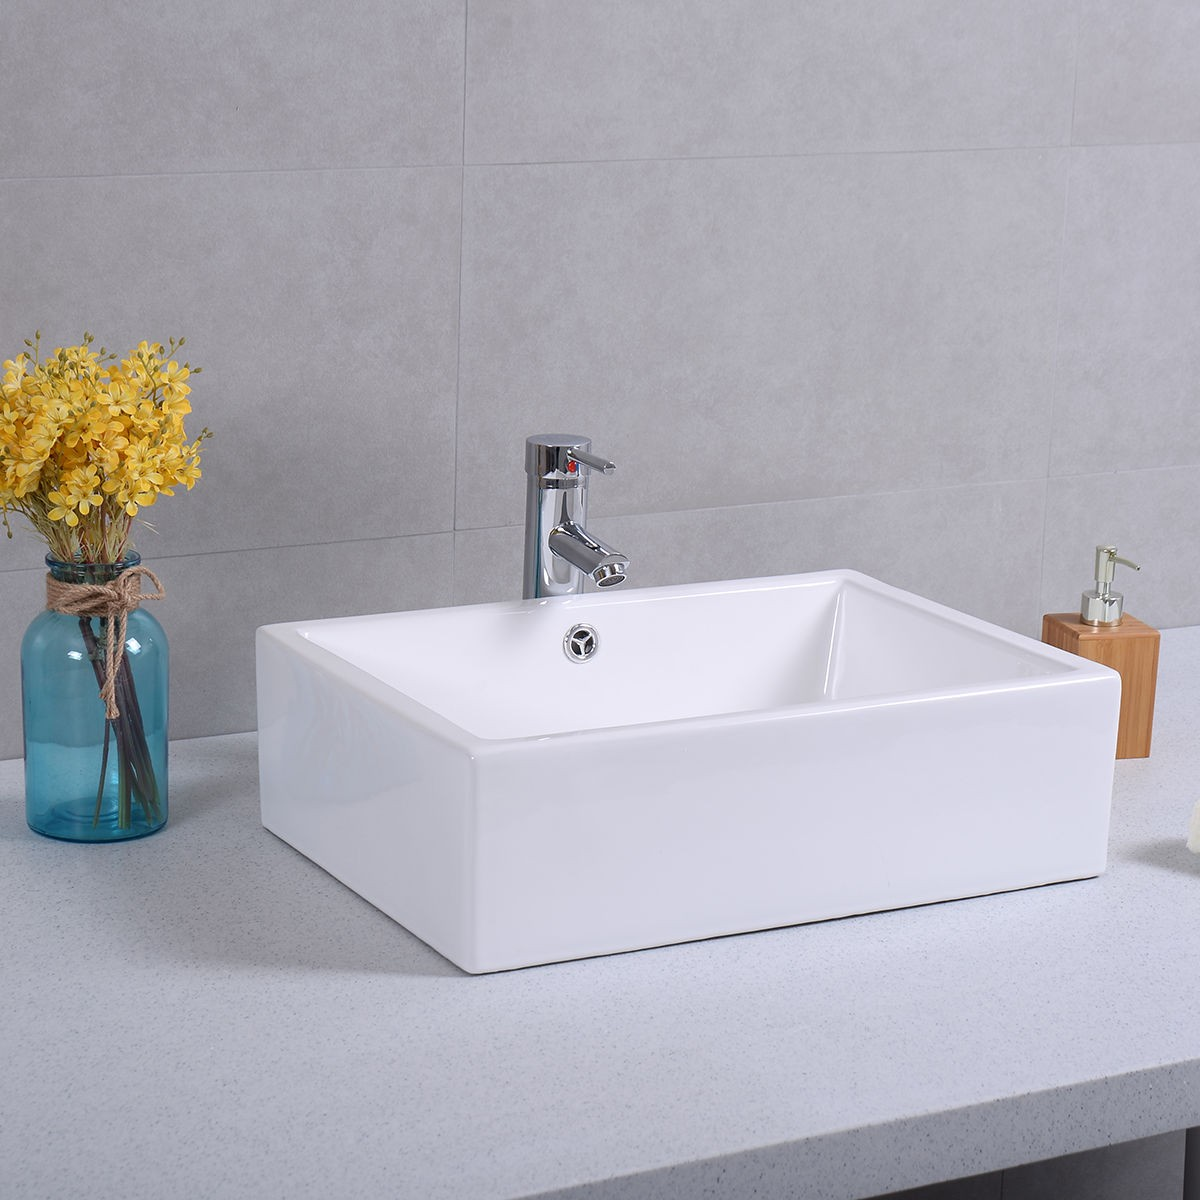 20 quot ceramic bathroom sink rectangle vessel bath deck mount 21625